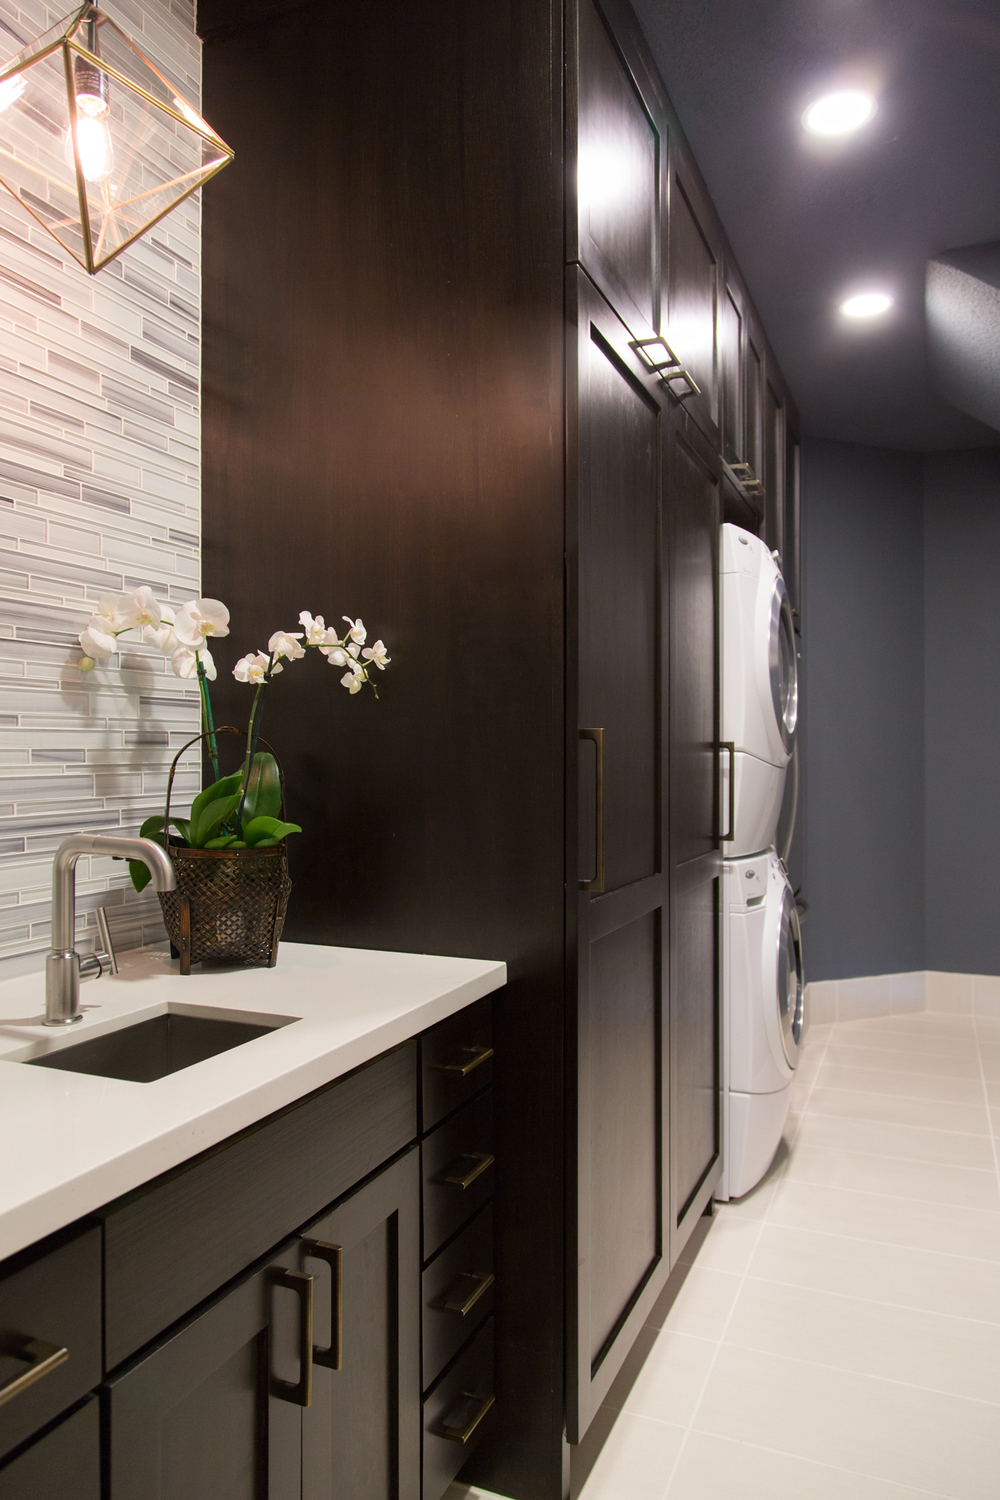 Laundry room remodel; sink; countertop; storage; cabinetry | Interior Designer: Carla Aston / Photographer: Tori Aston